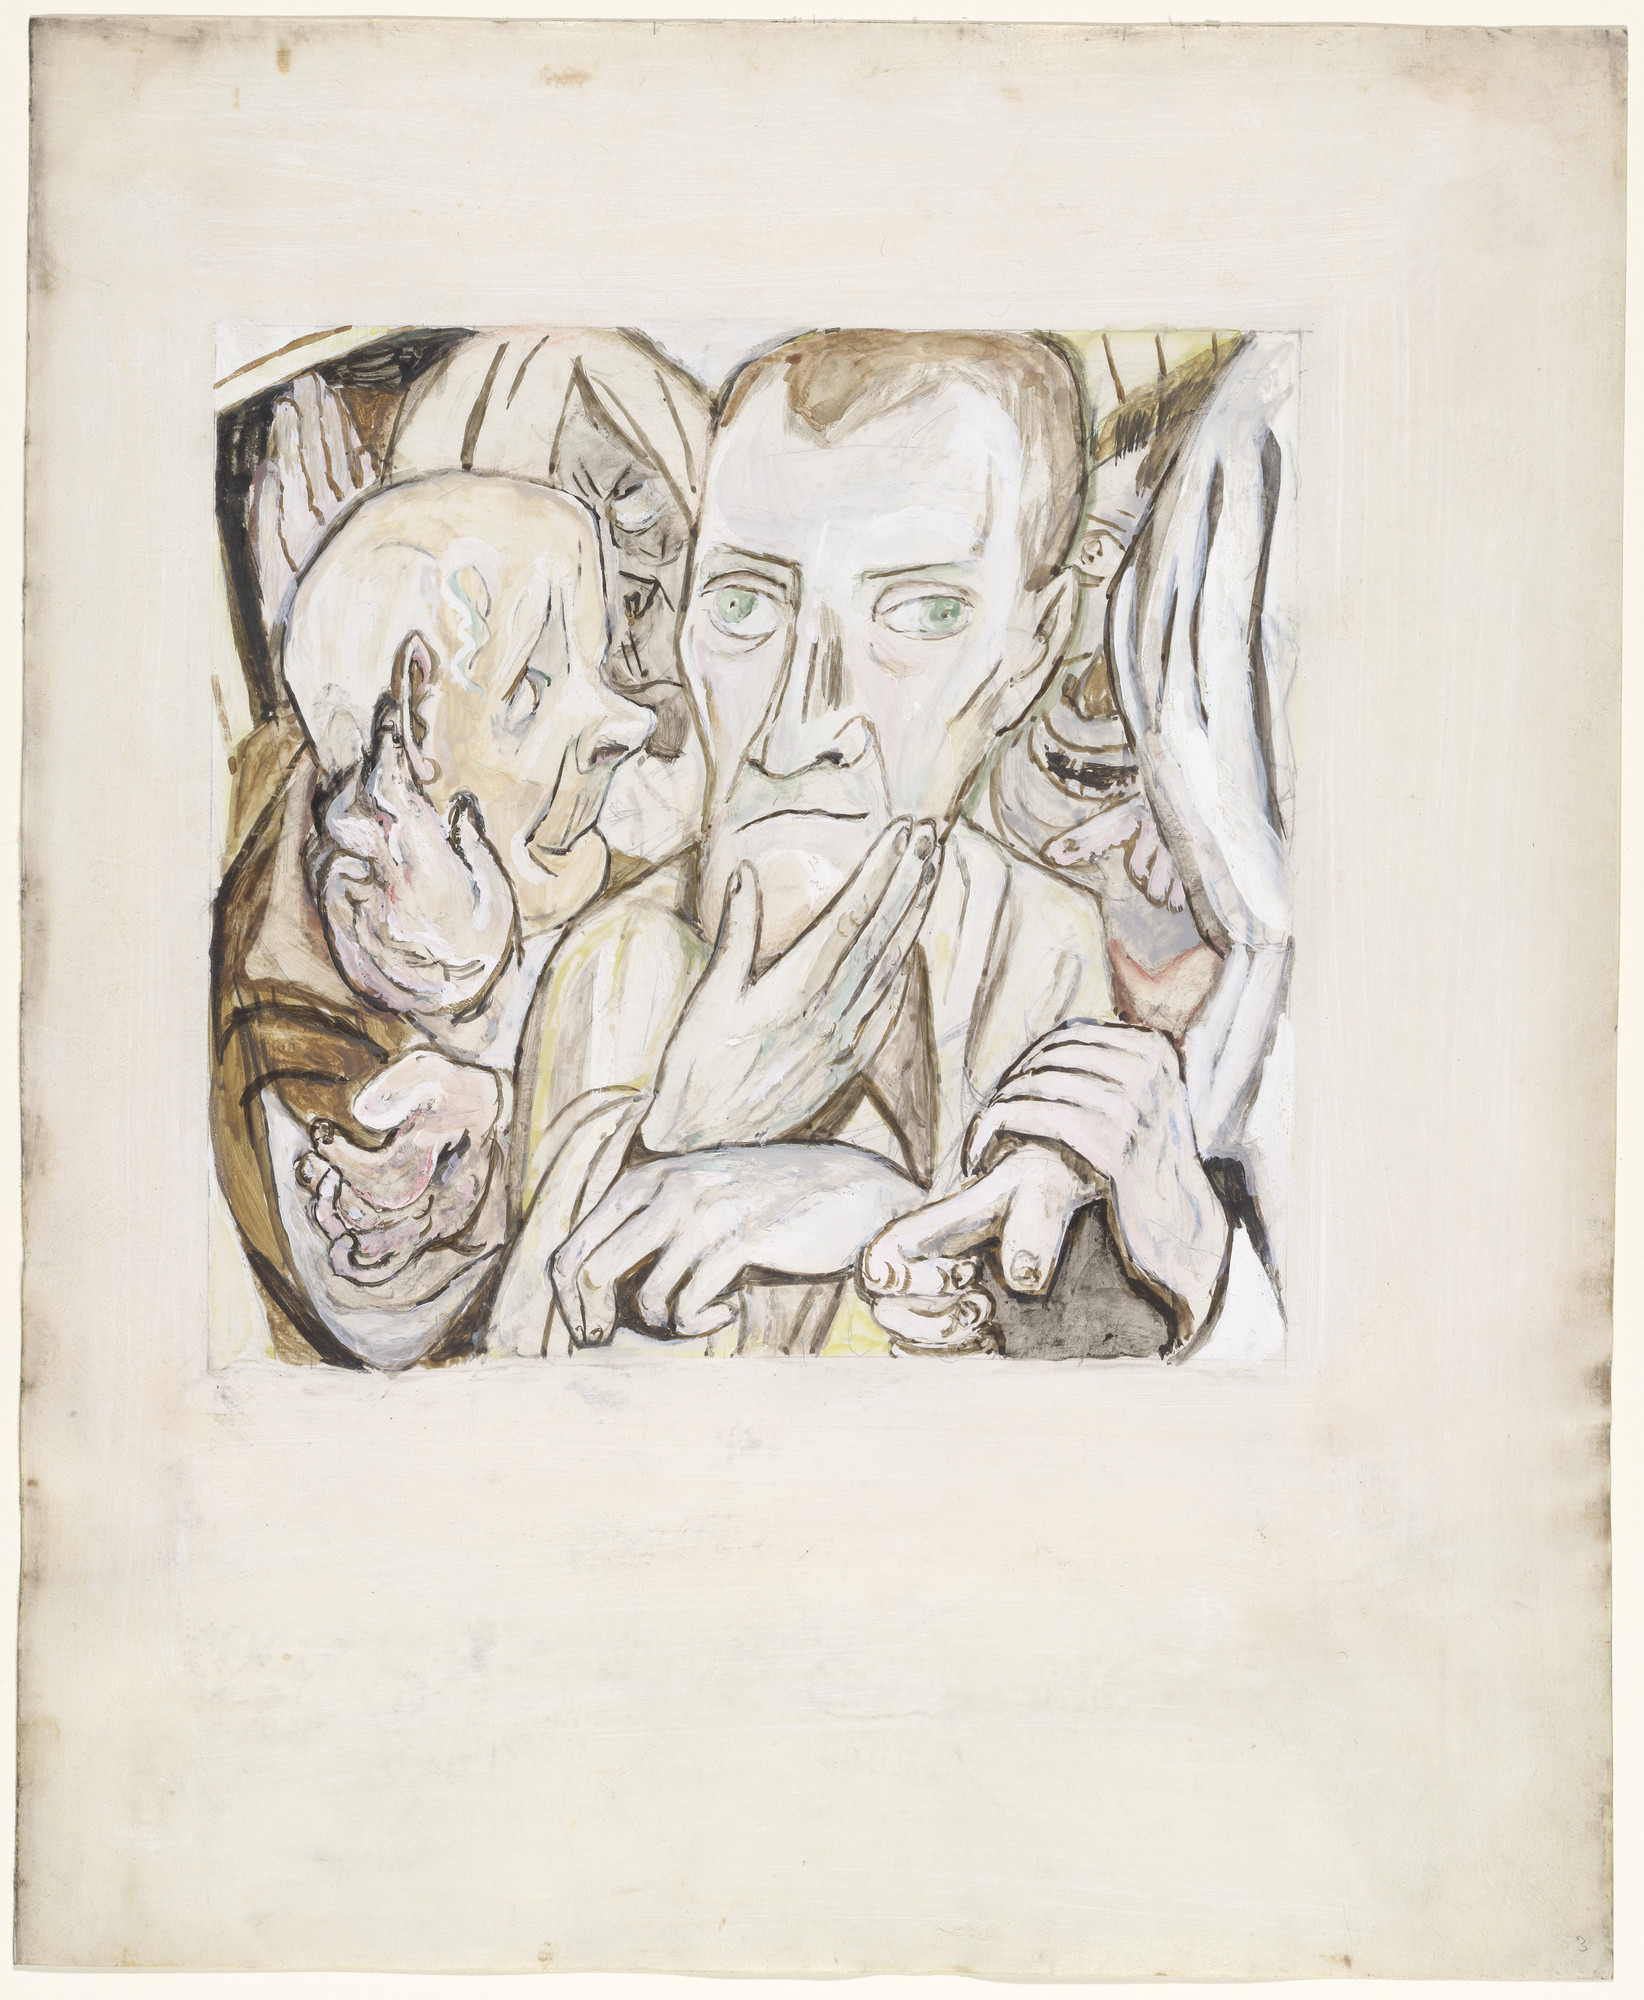 Max Beckmann. The Mocking of the Prodigal Son (Der Verlorene Sohn wird verspottet). (c. 1918)